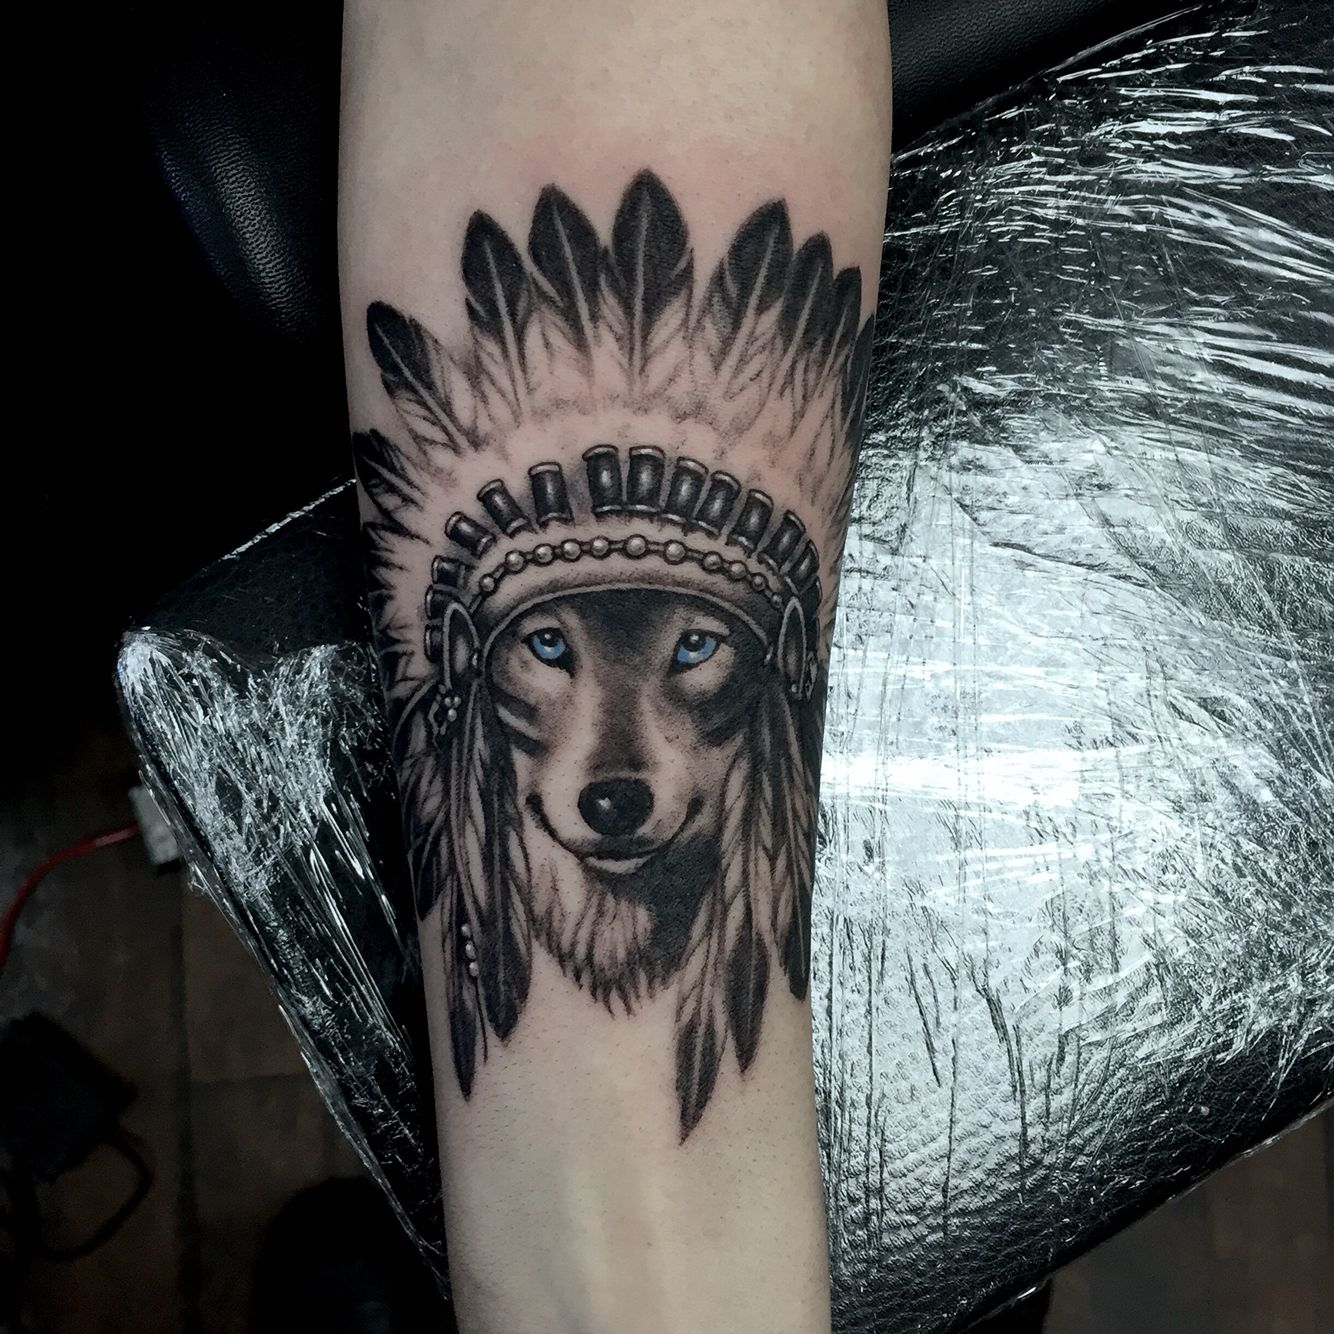 Tattoos Wolf Tattoos Headdress Tattoo: Wolf Headdress Tattoo By John McKee At Twisted Image